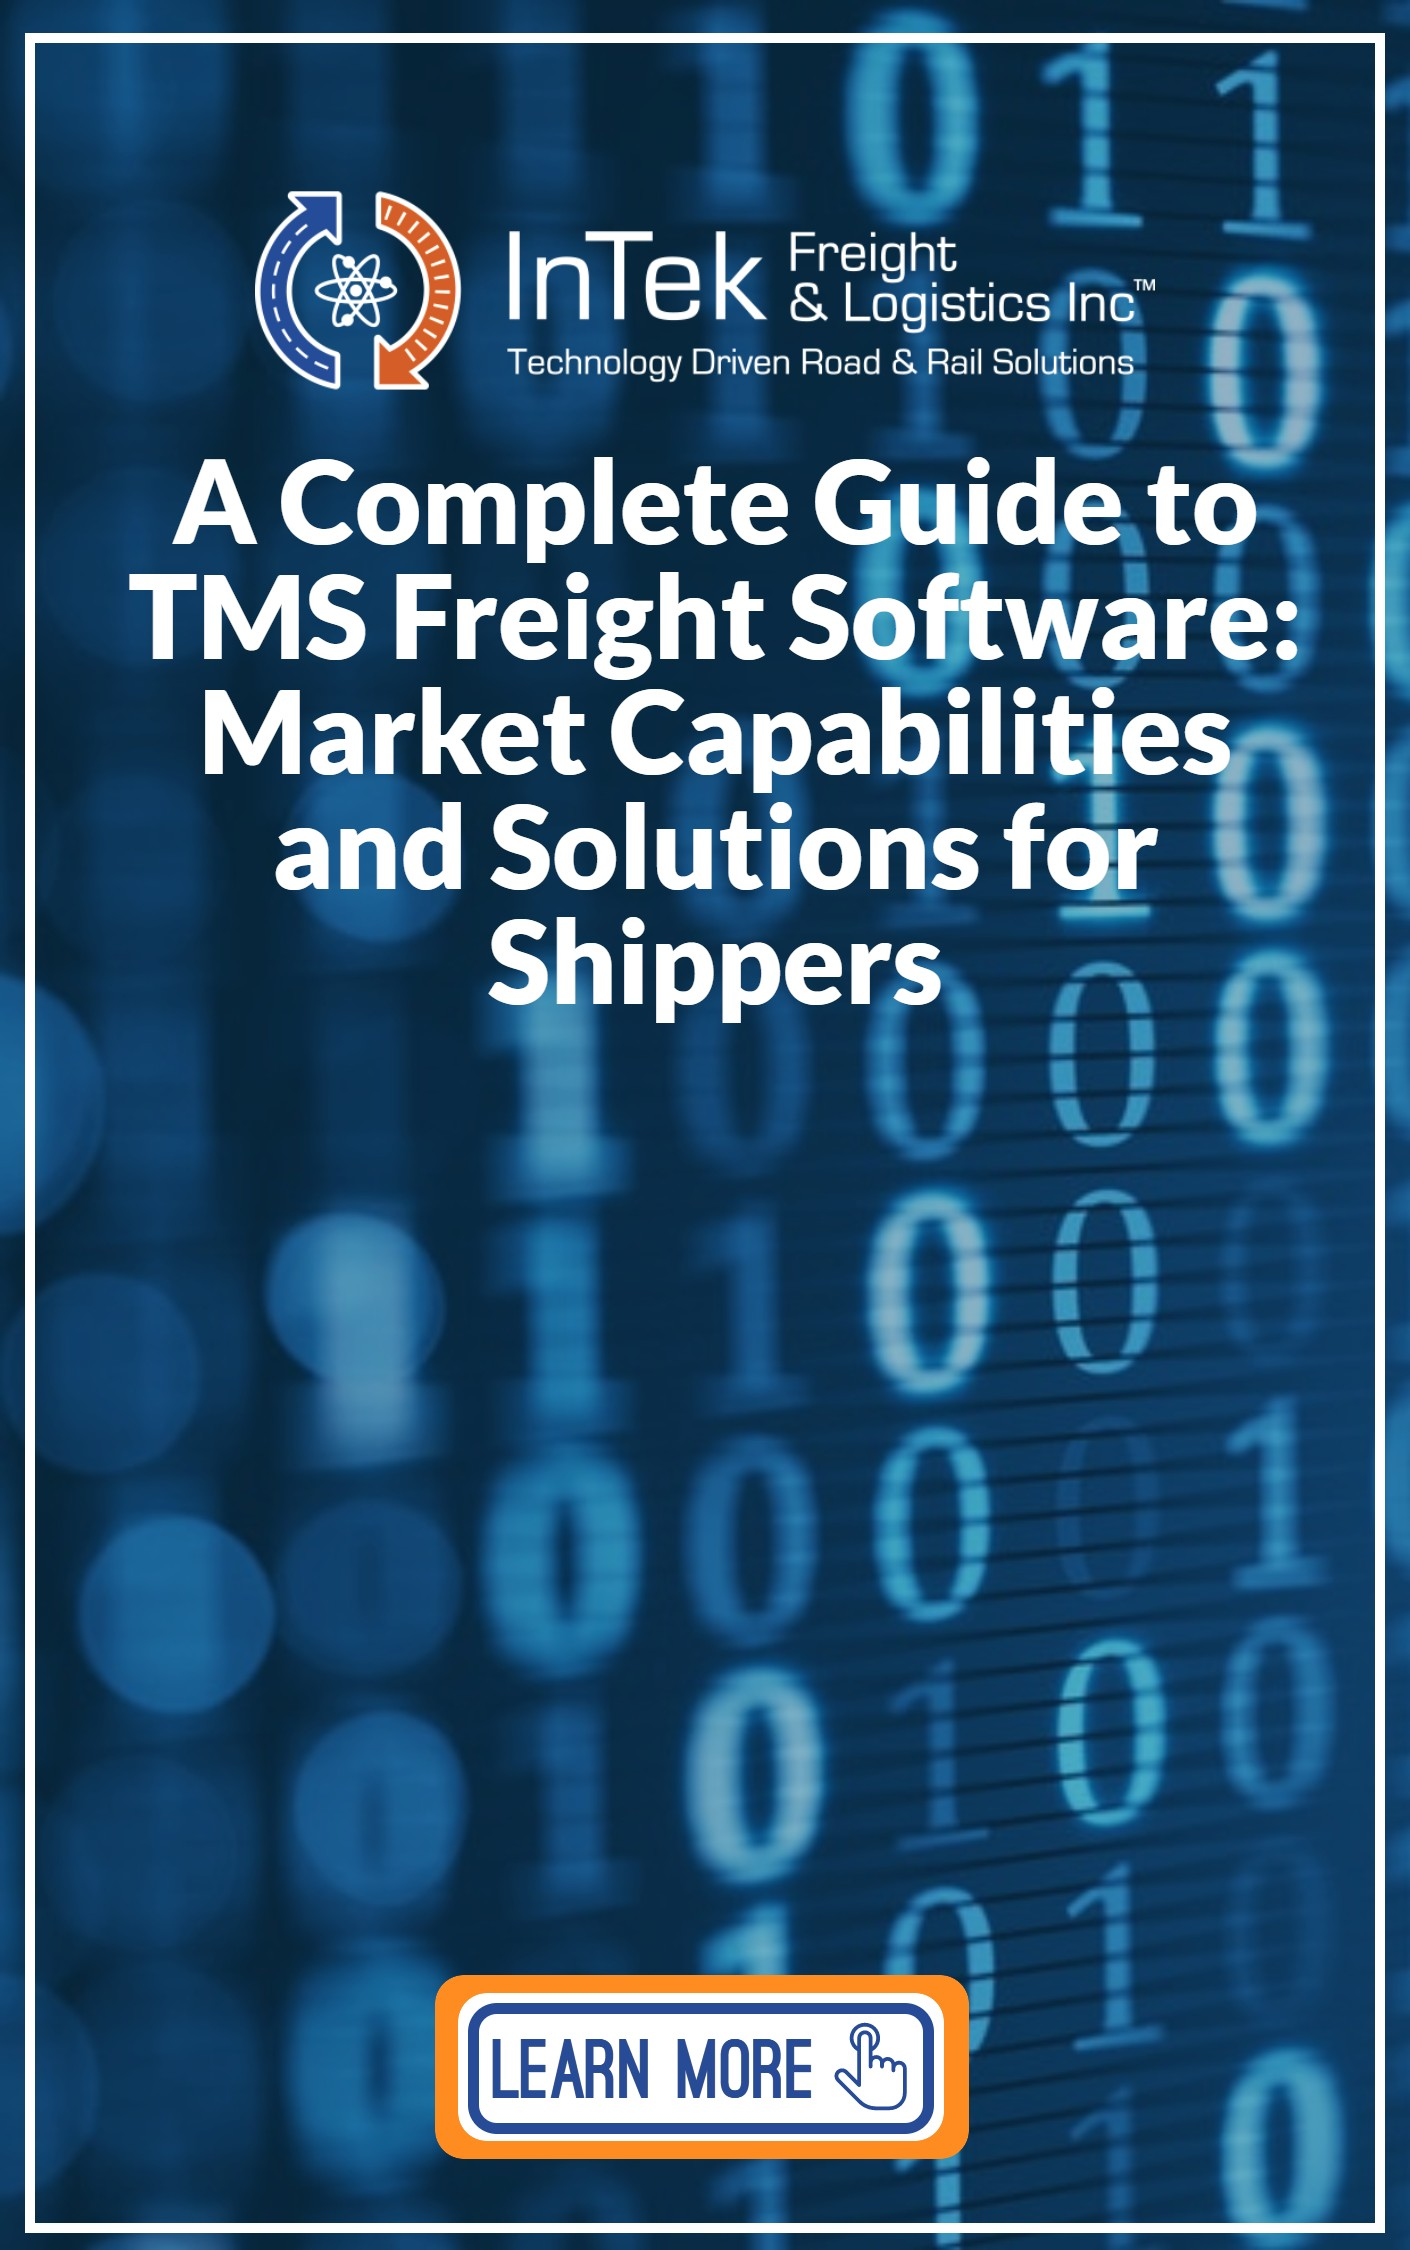 Complete Guide to TMS Freight Software